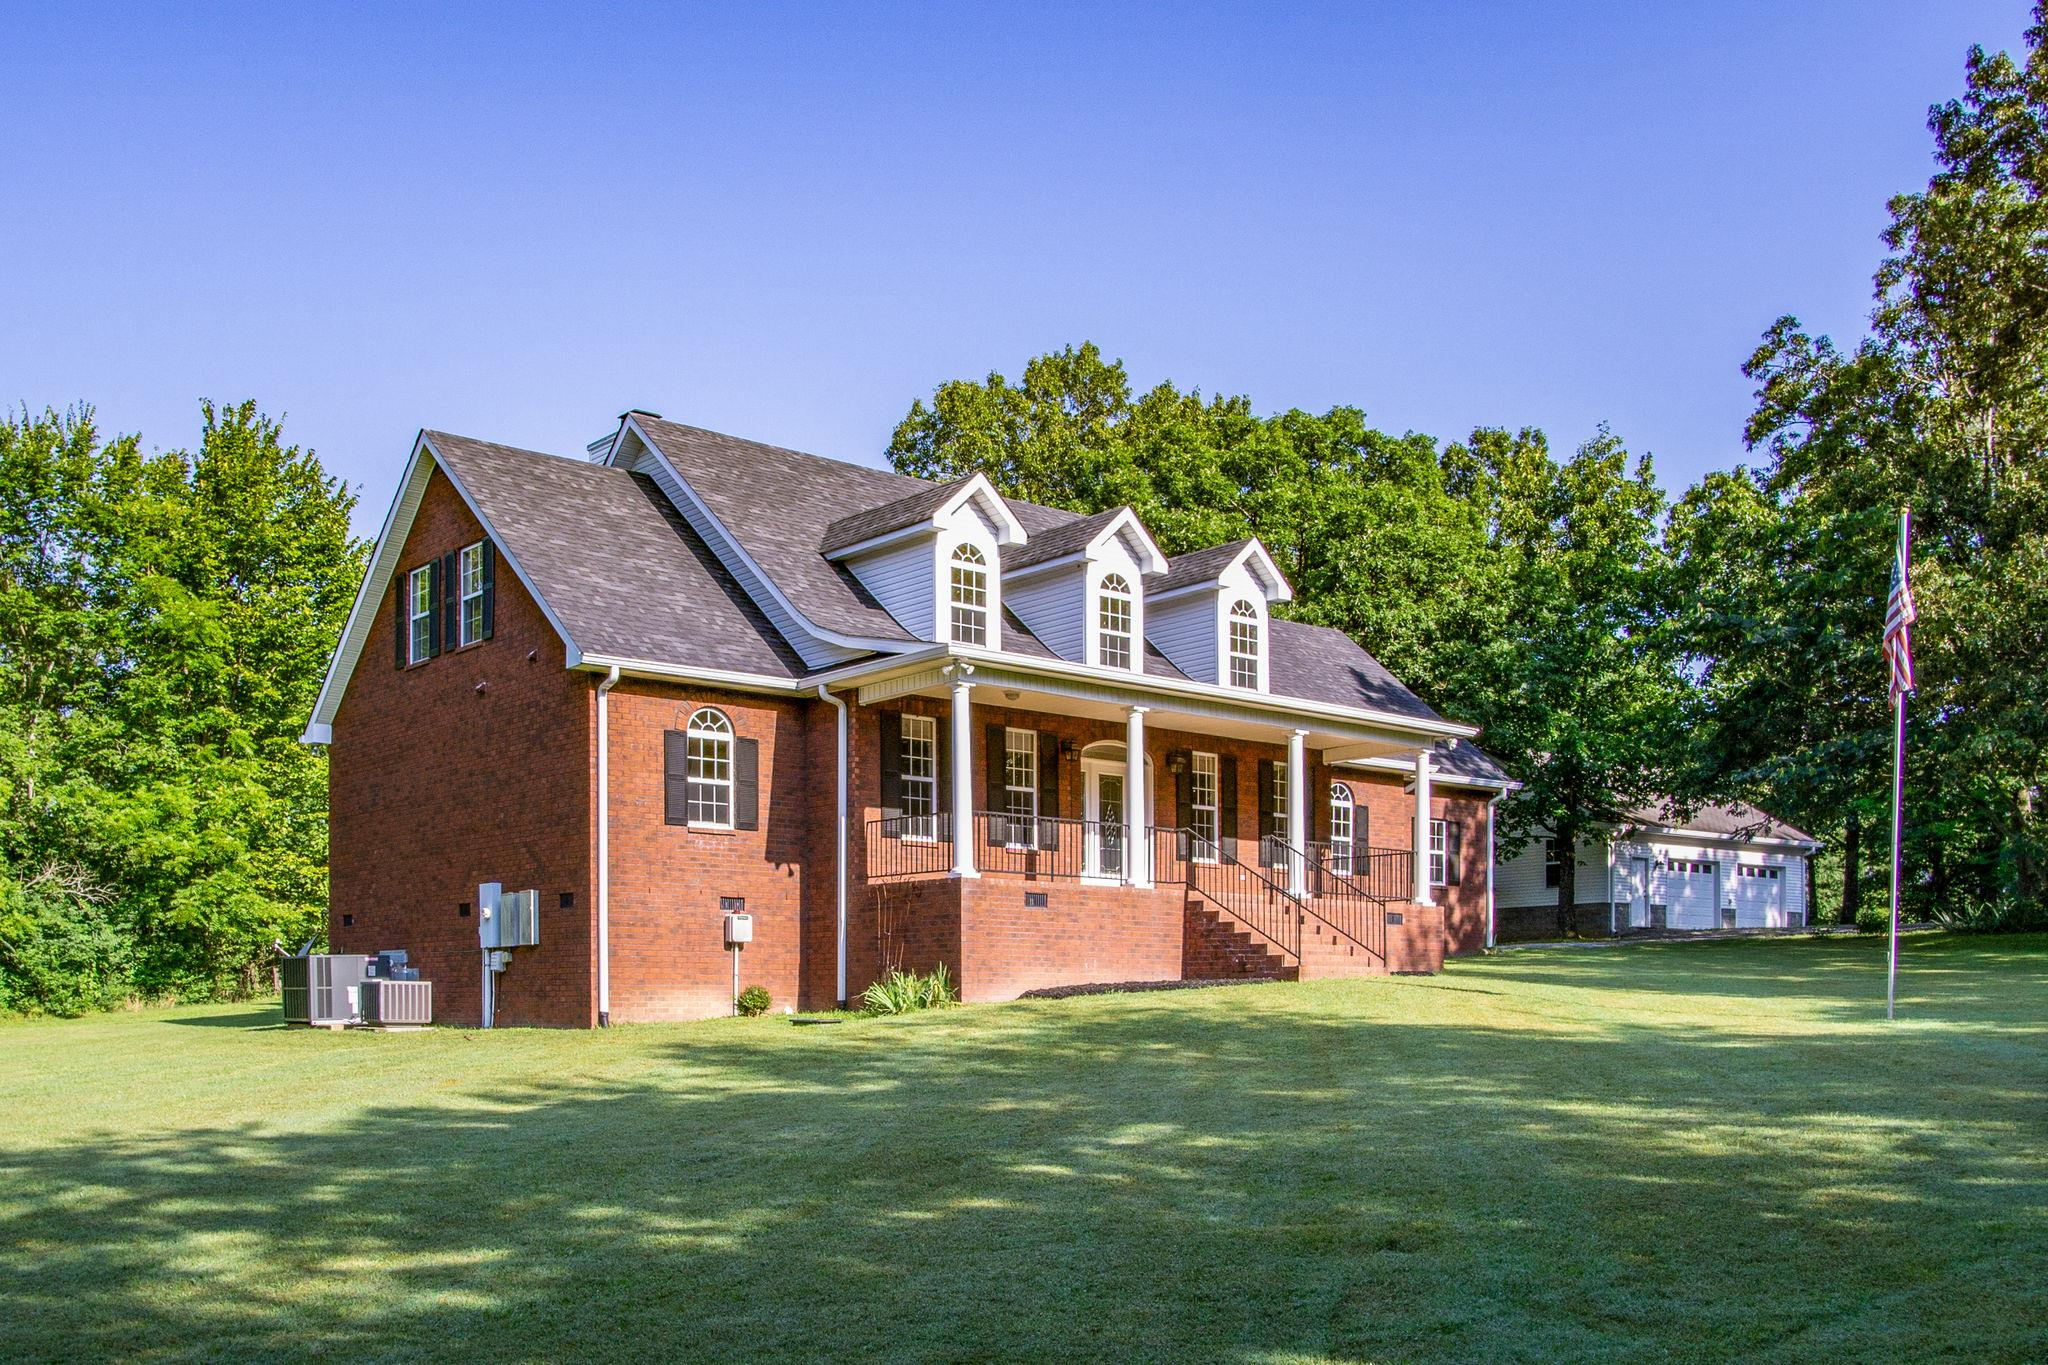 7109 Harrison Drive, Fairview in Williamson County County, TN 37062 Home for Sale